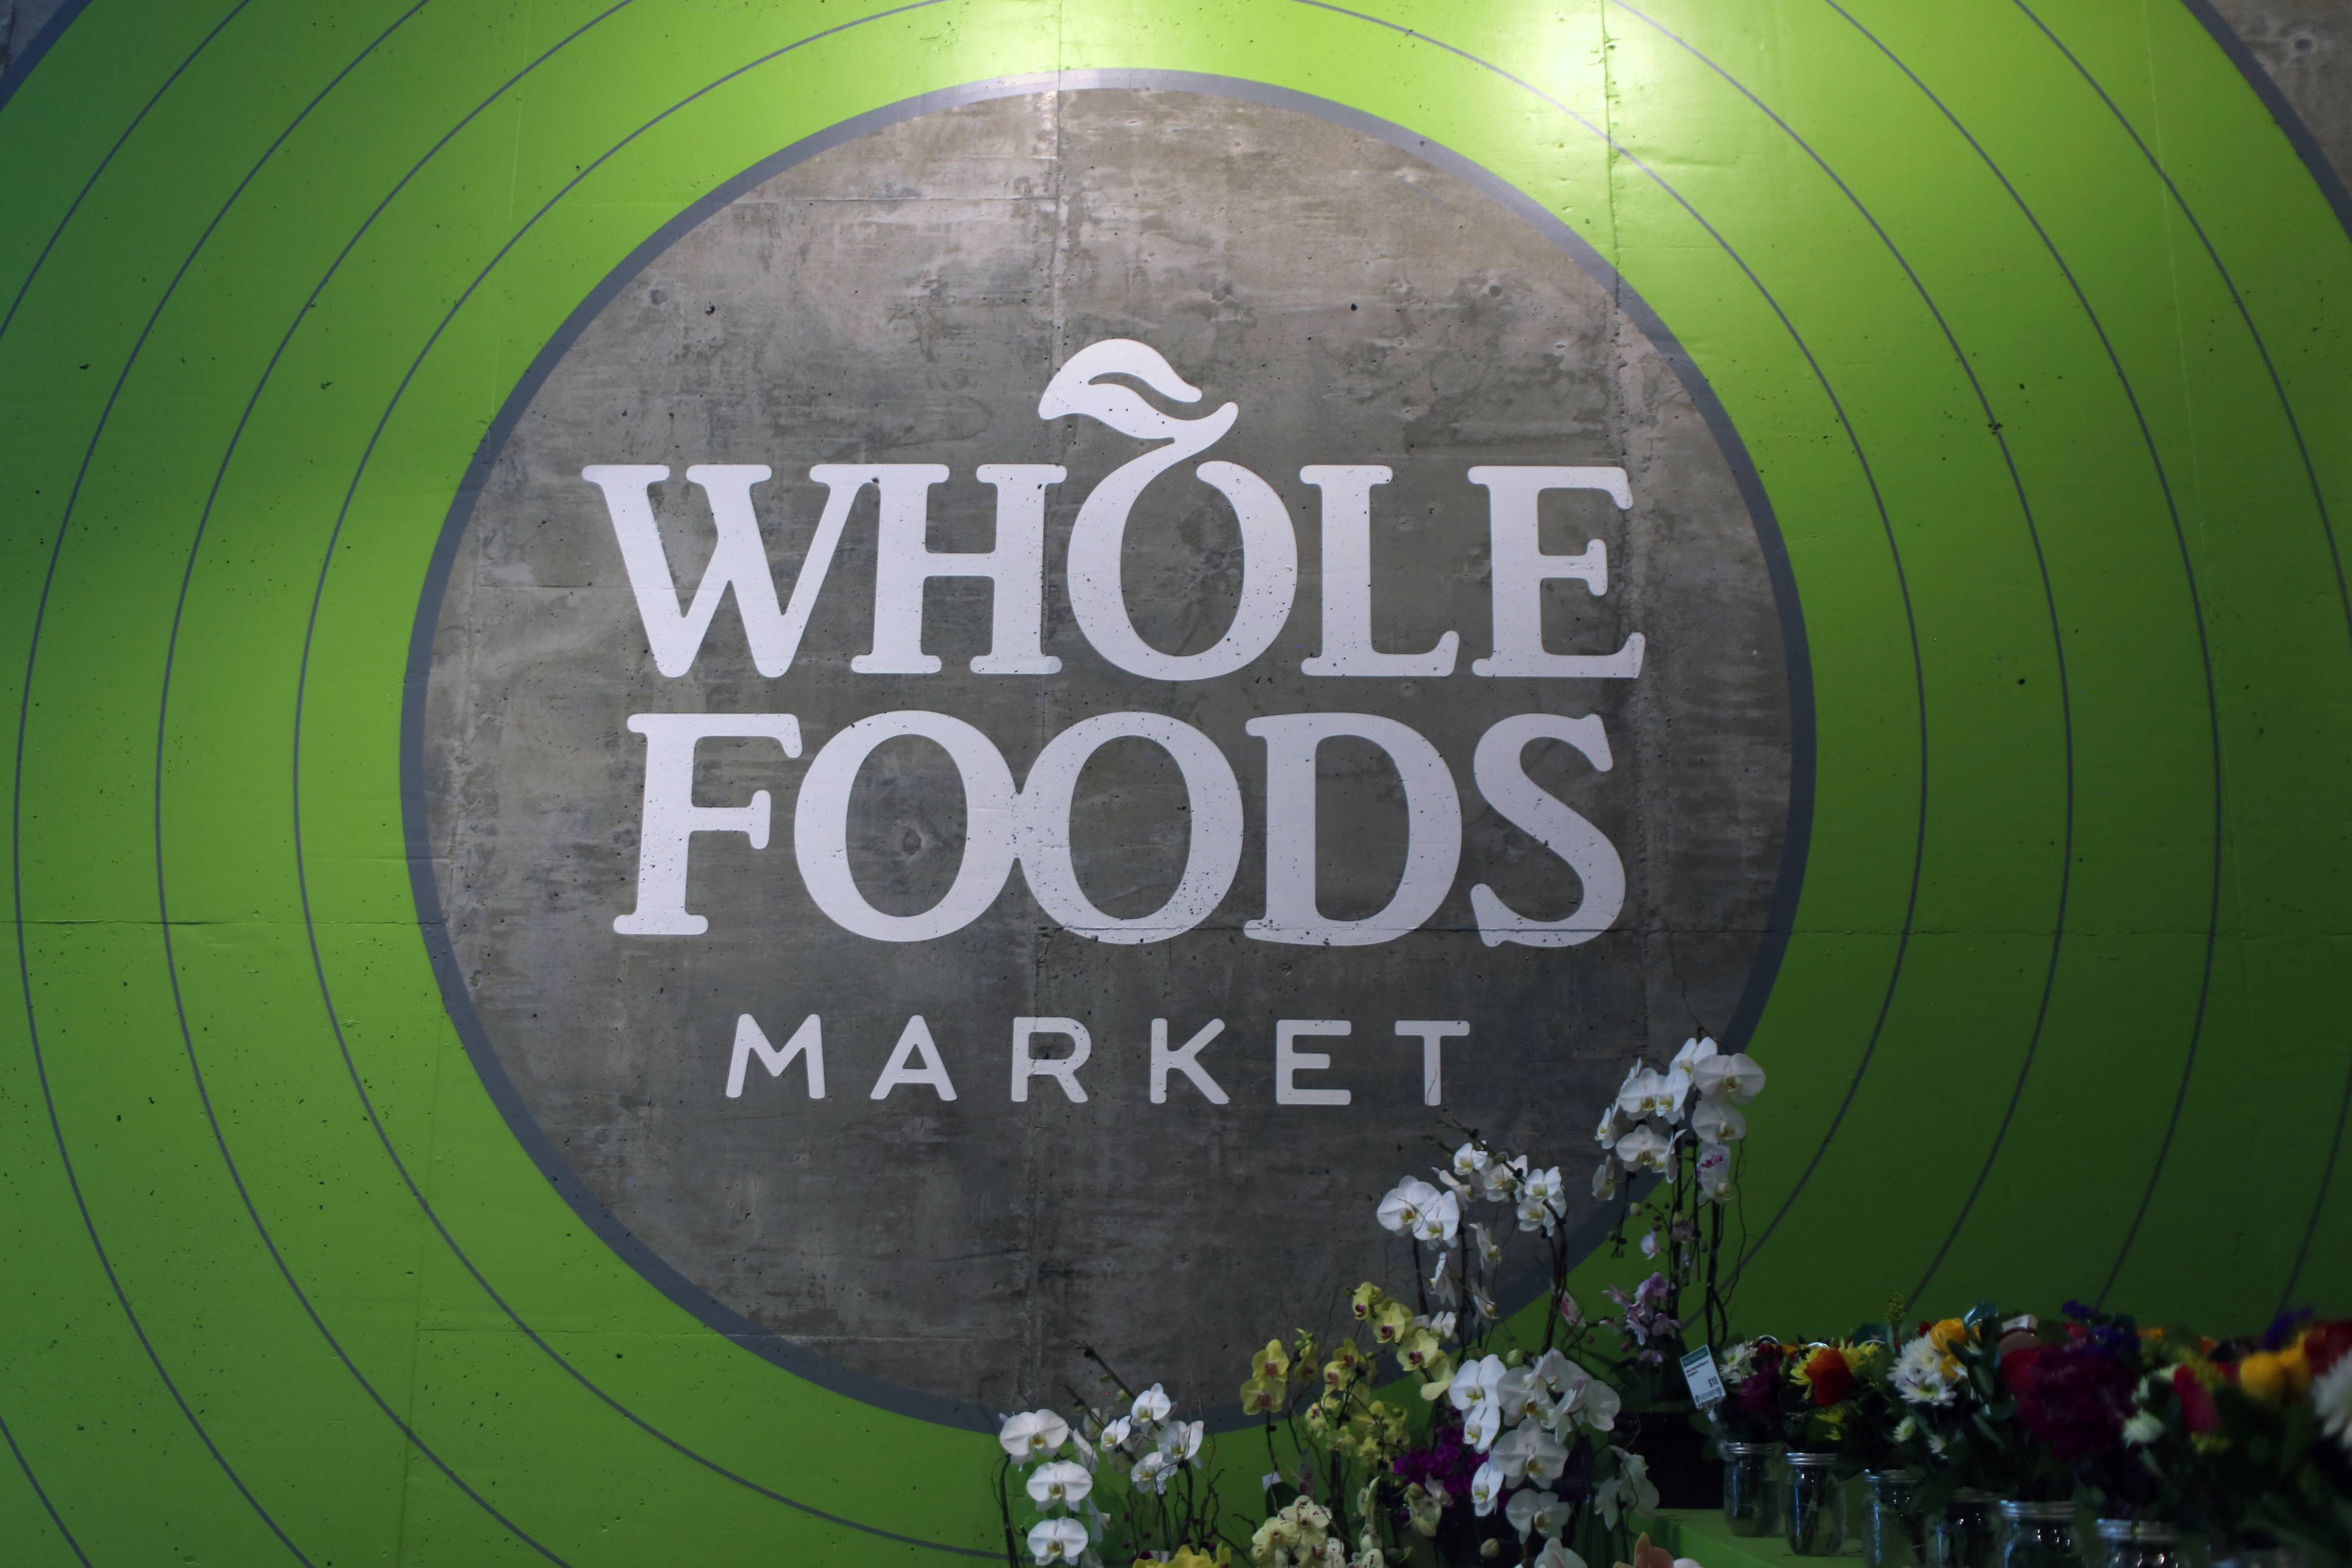 Watchdog groups found high levels of fluorine in five of the 17 items tested at Whole Foods — four of which were take-out containers for its salad and hot food bar. These items have been removed from Whole Foods Market, the company said in an email.